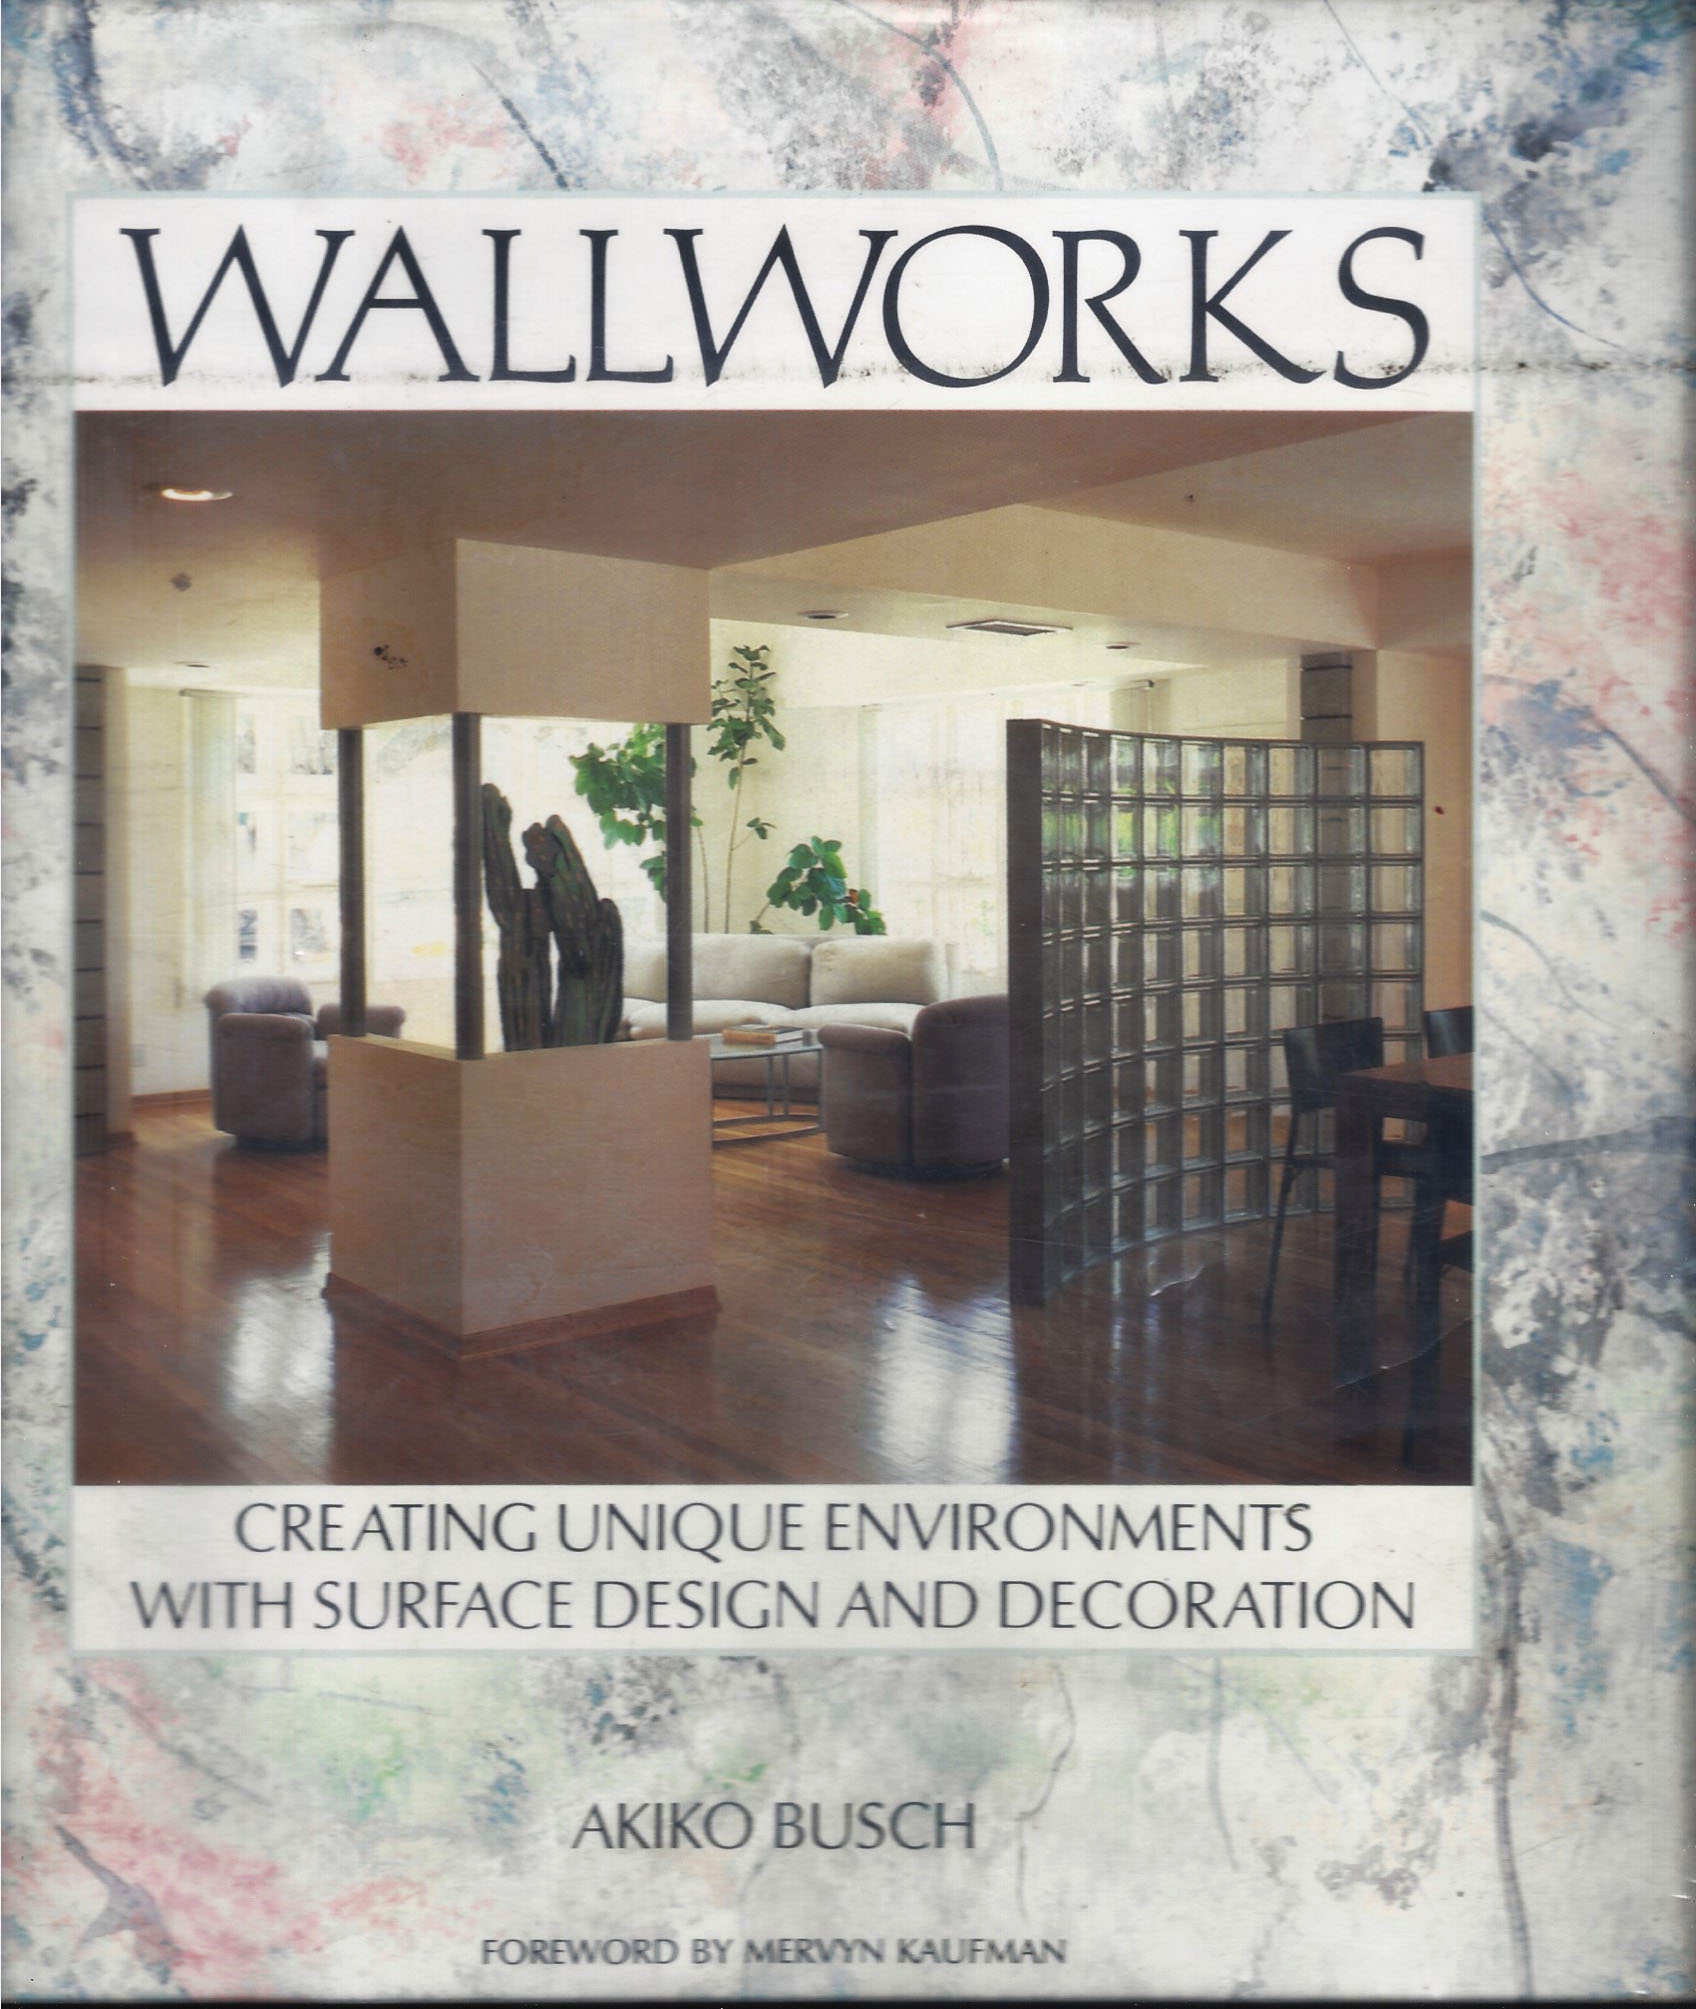 Wallworks: Creating Unique Environments With Surface Design And Decoration